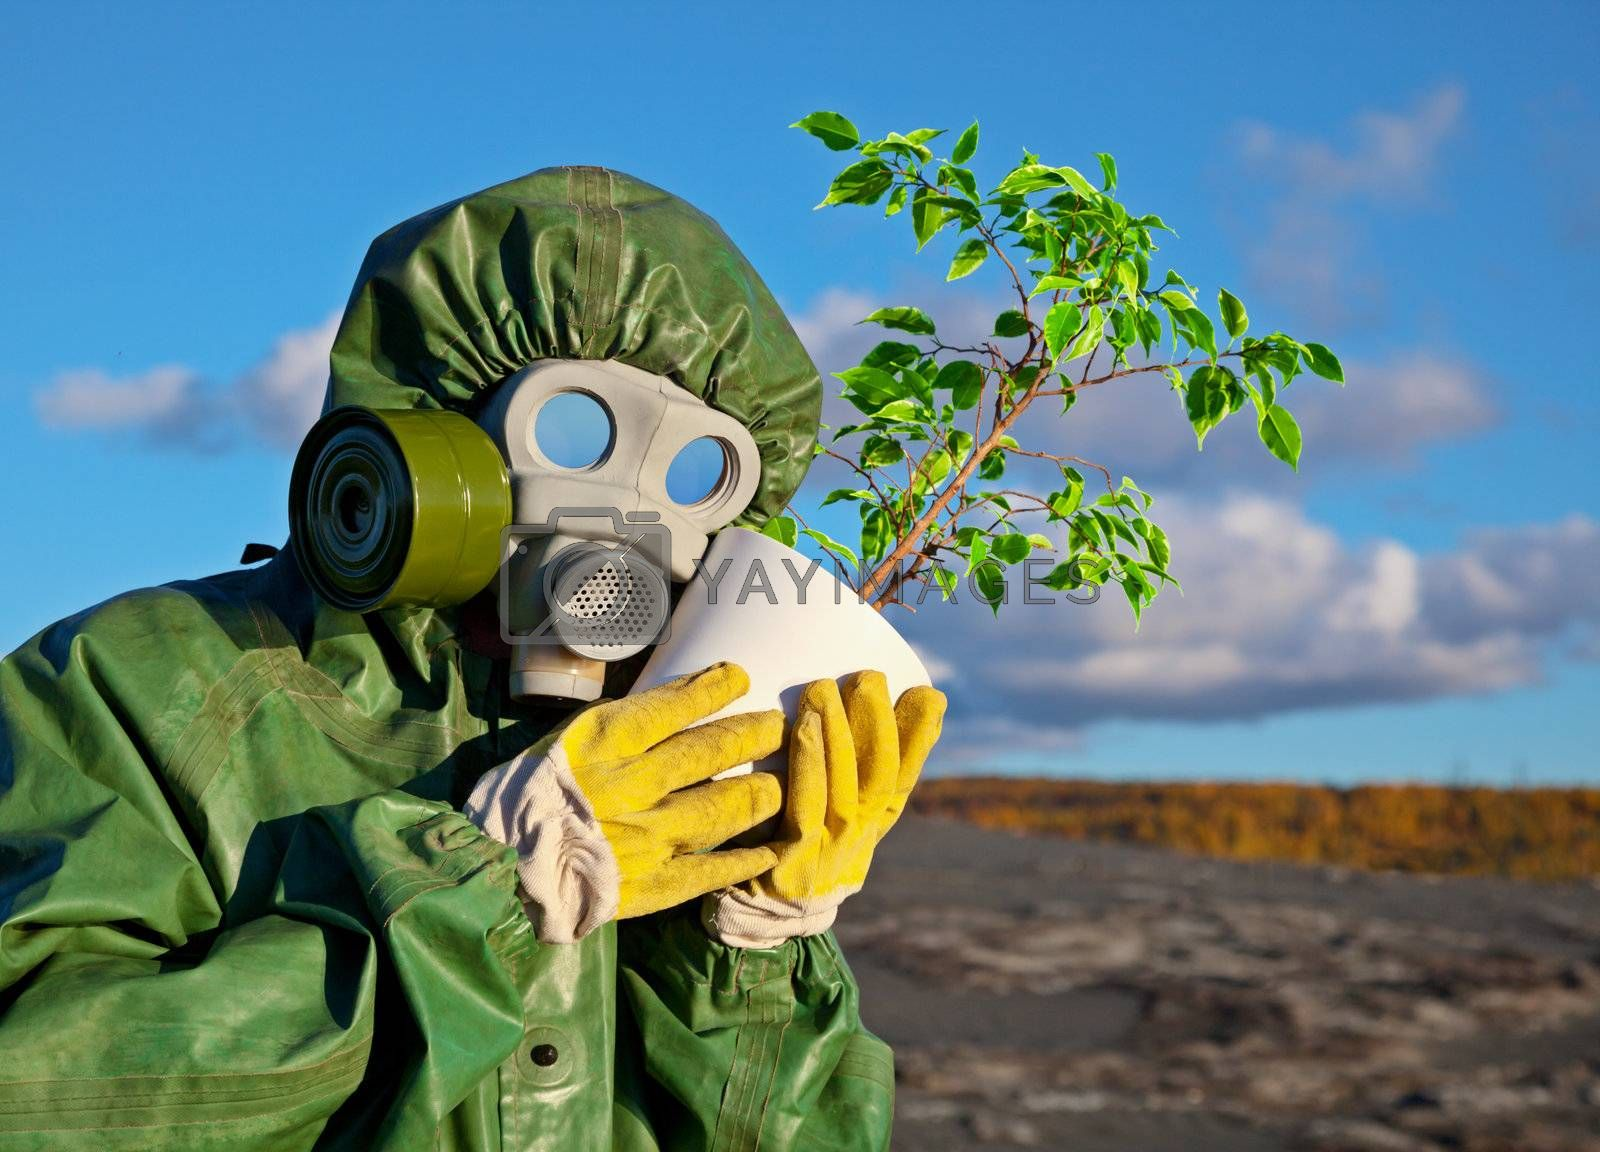 The biologists embrace genetically modified plant